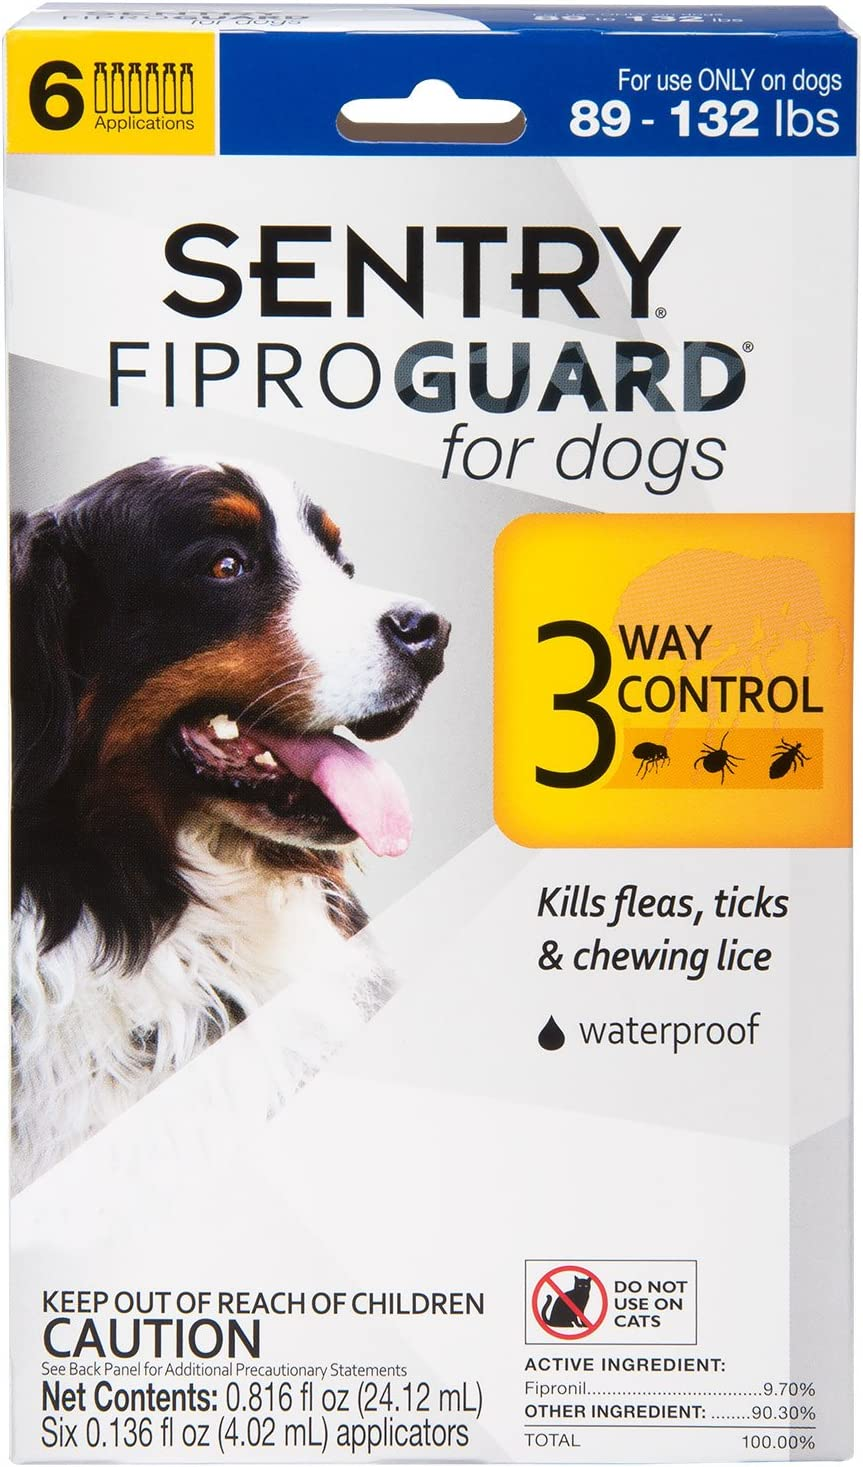 SENTRY Fiproguard for Dogs, Flea and Tick Prevention for Dogs (89-132 Pounds), Includes 6 Month Supply of Topical Flea Treatments